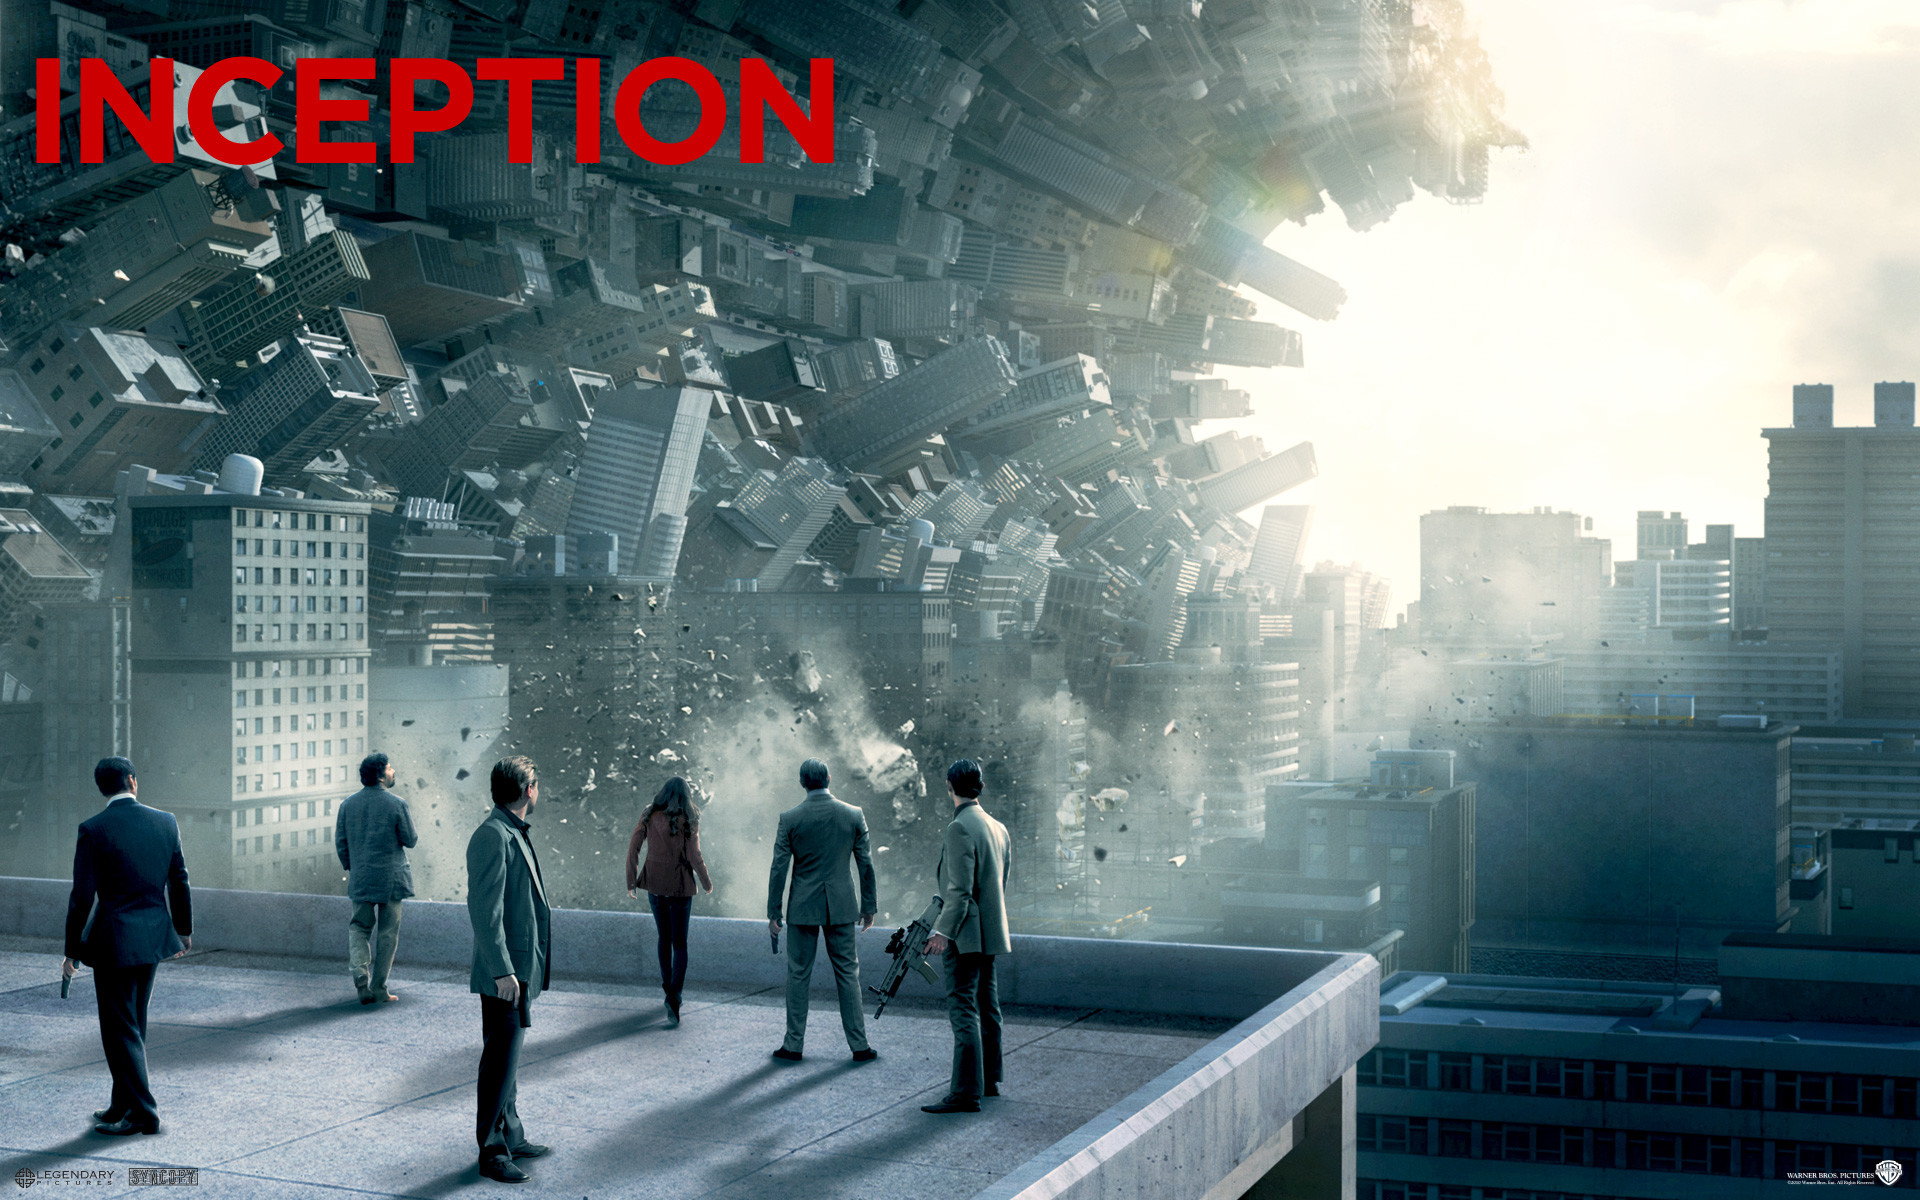 1920x1200 Inception movie poster